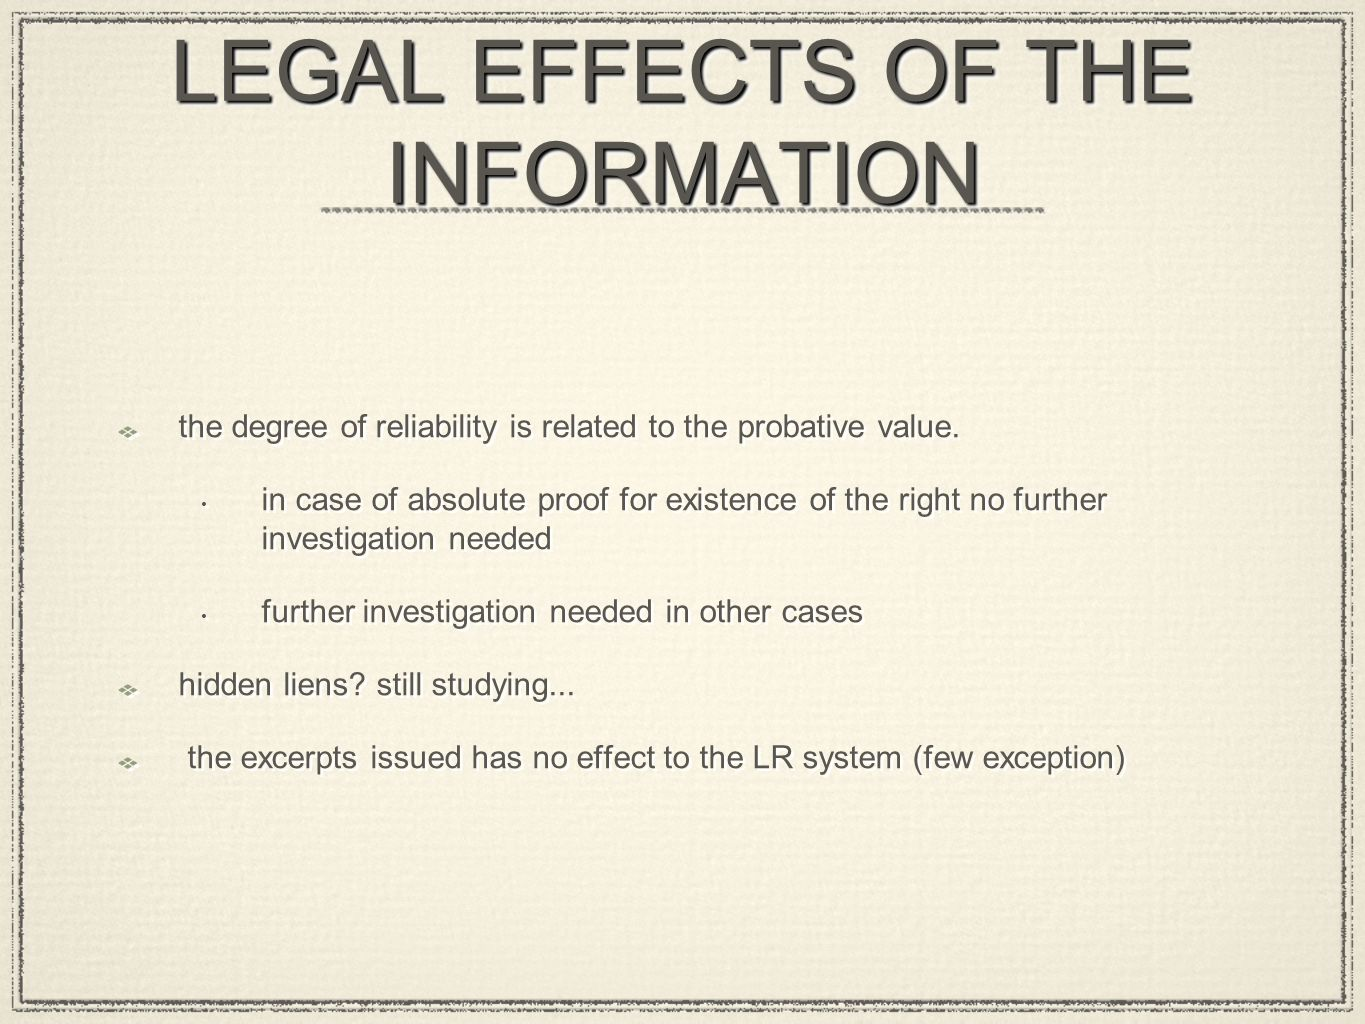 LEGAL EFFECTS OF THE INFORMATION the degree of reliability is related to the probative value.